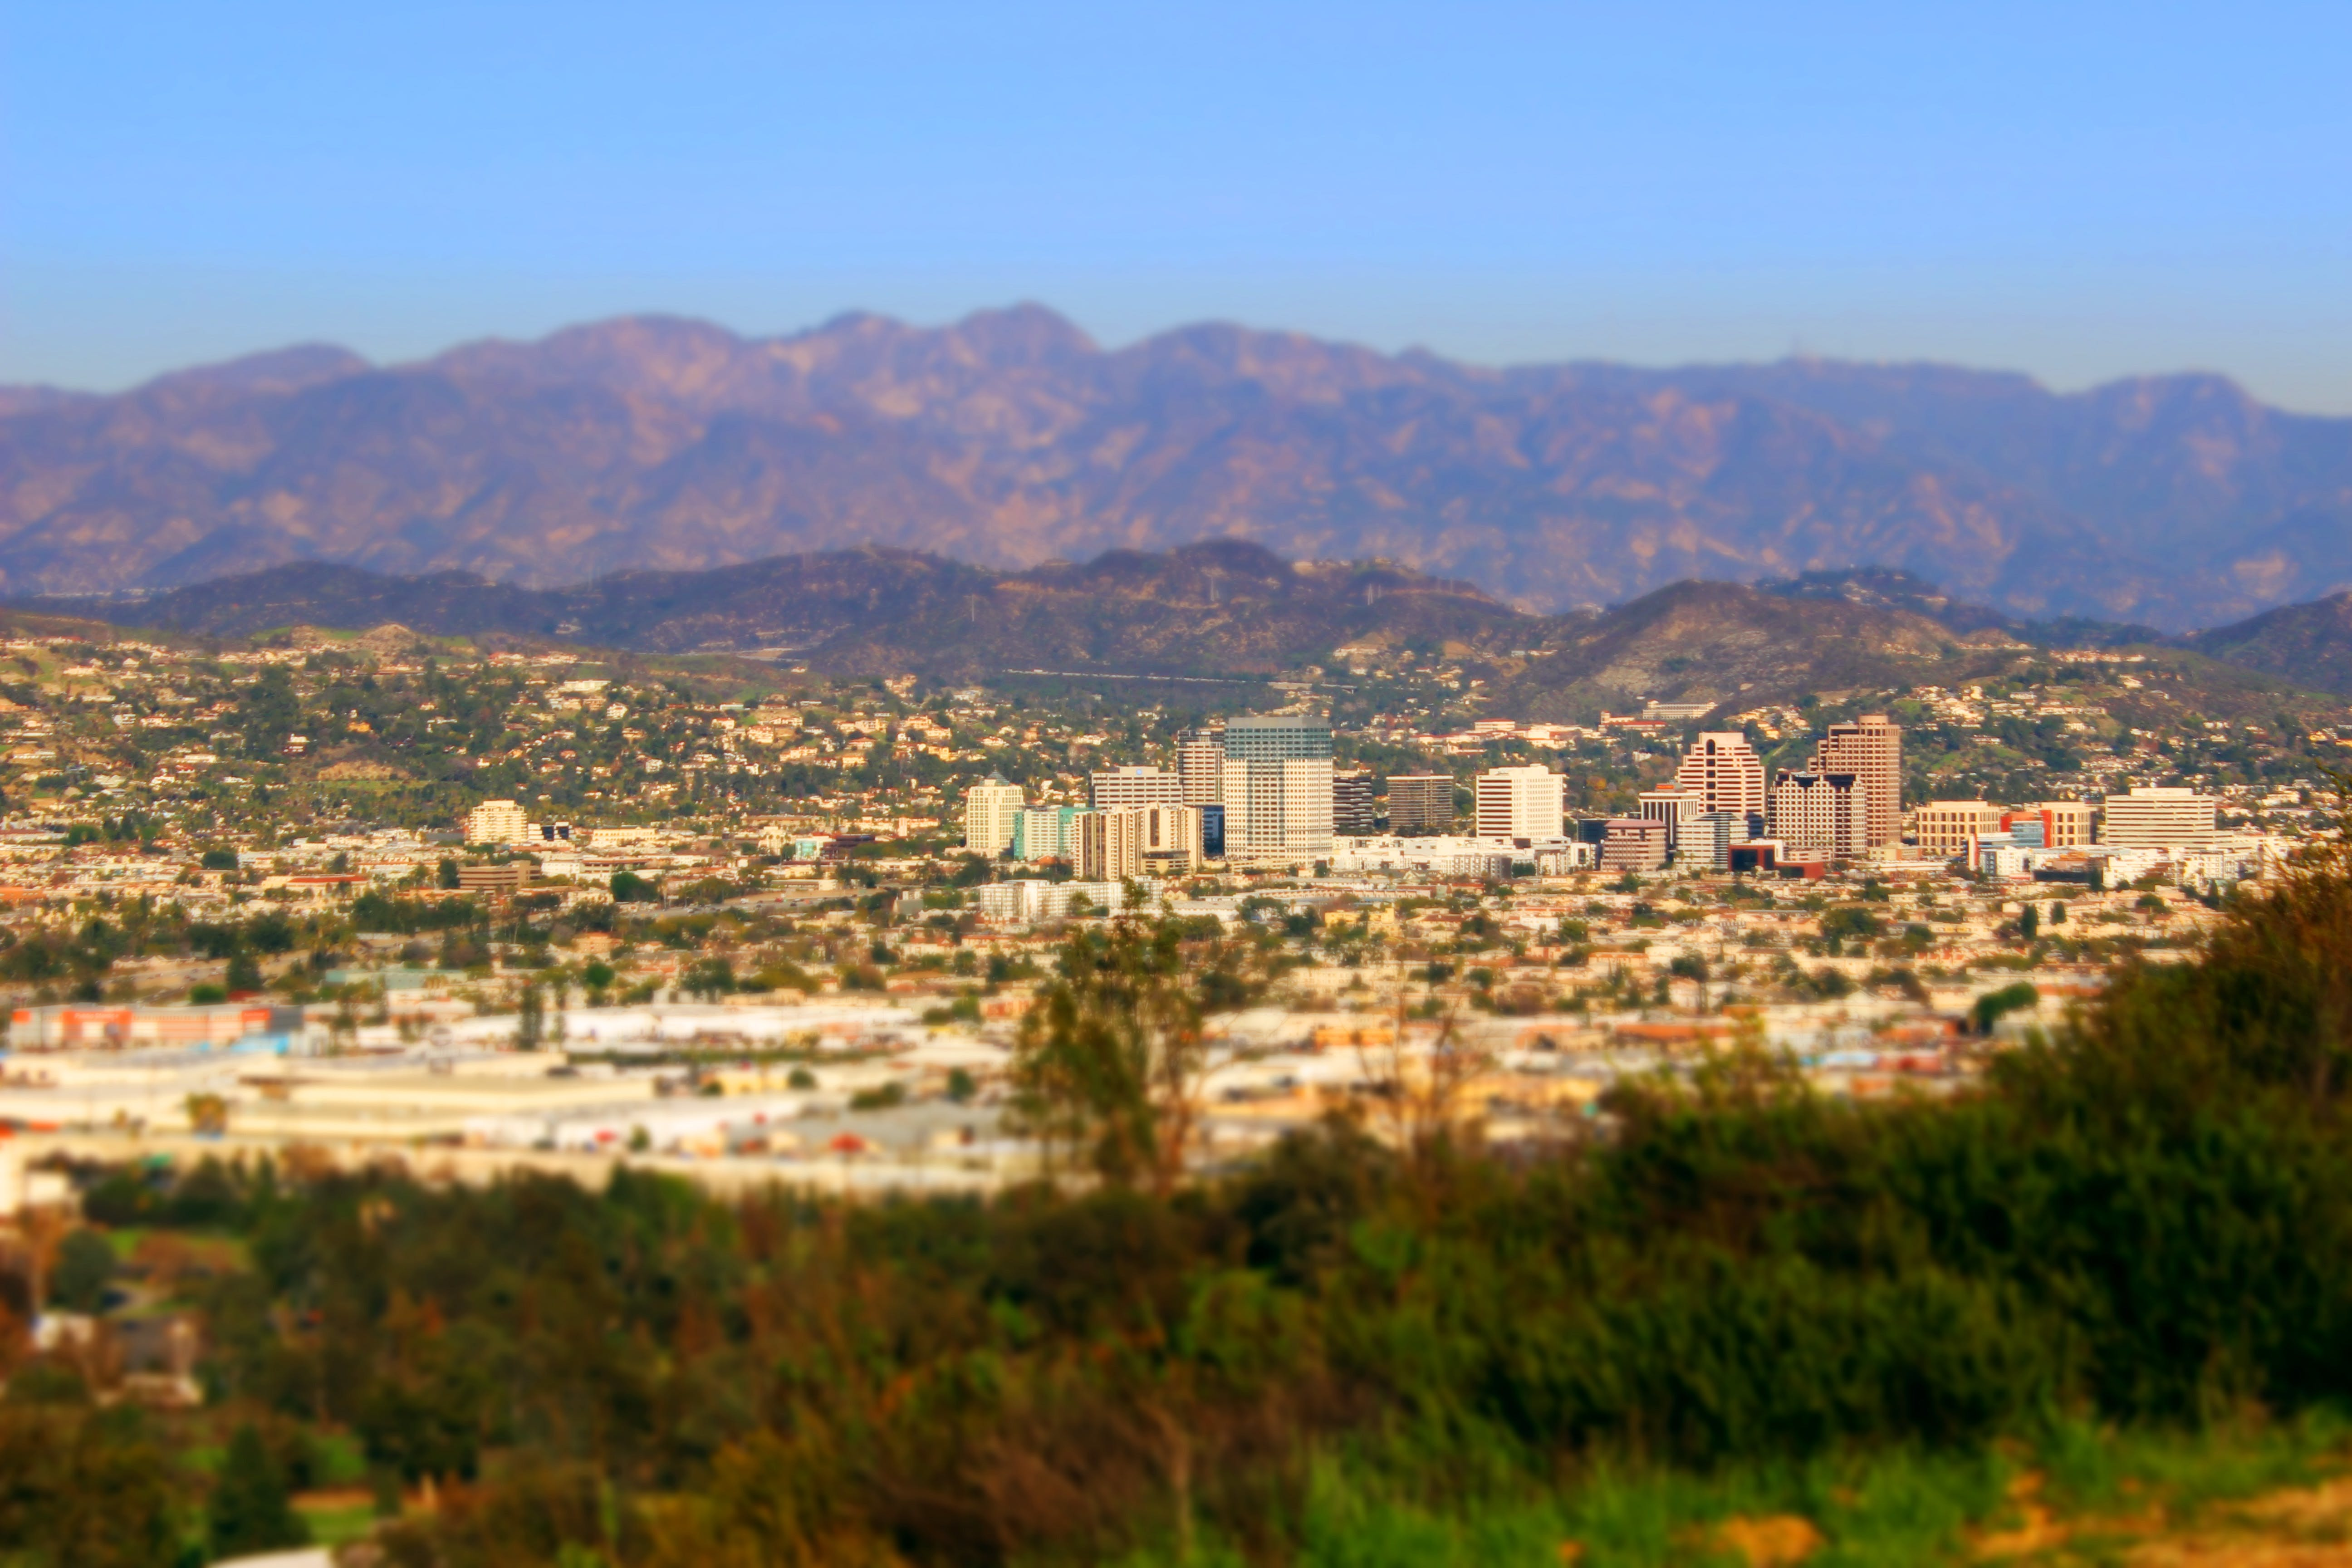 Free stock photo of buildings, Burbank, city, valley